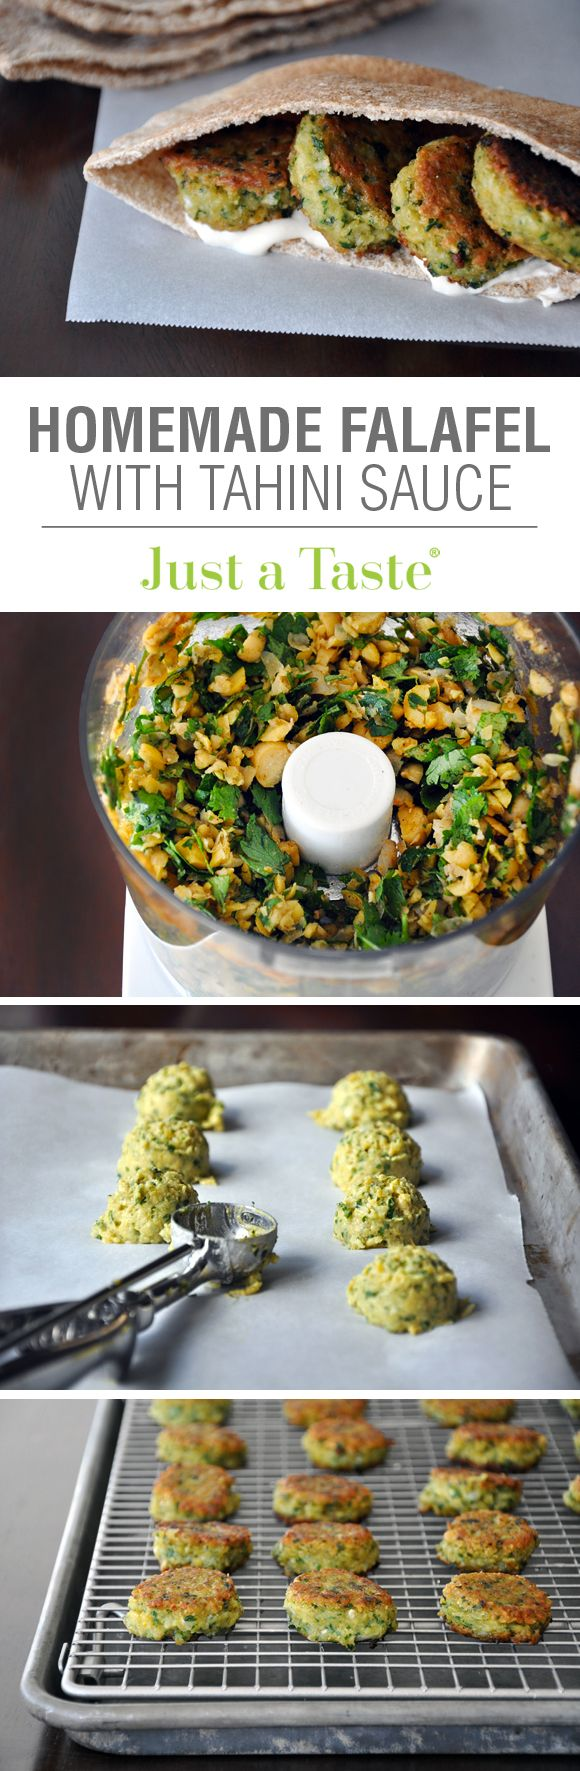 Homemade Falafel with Tahini Sauce #recipe from justataste.com